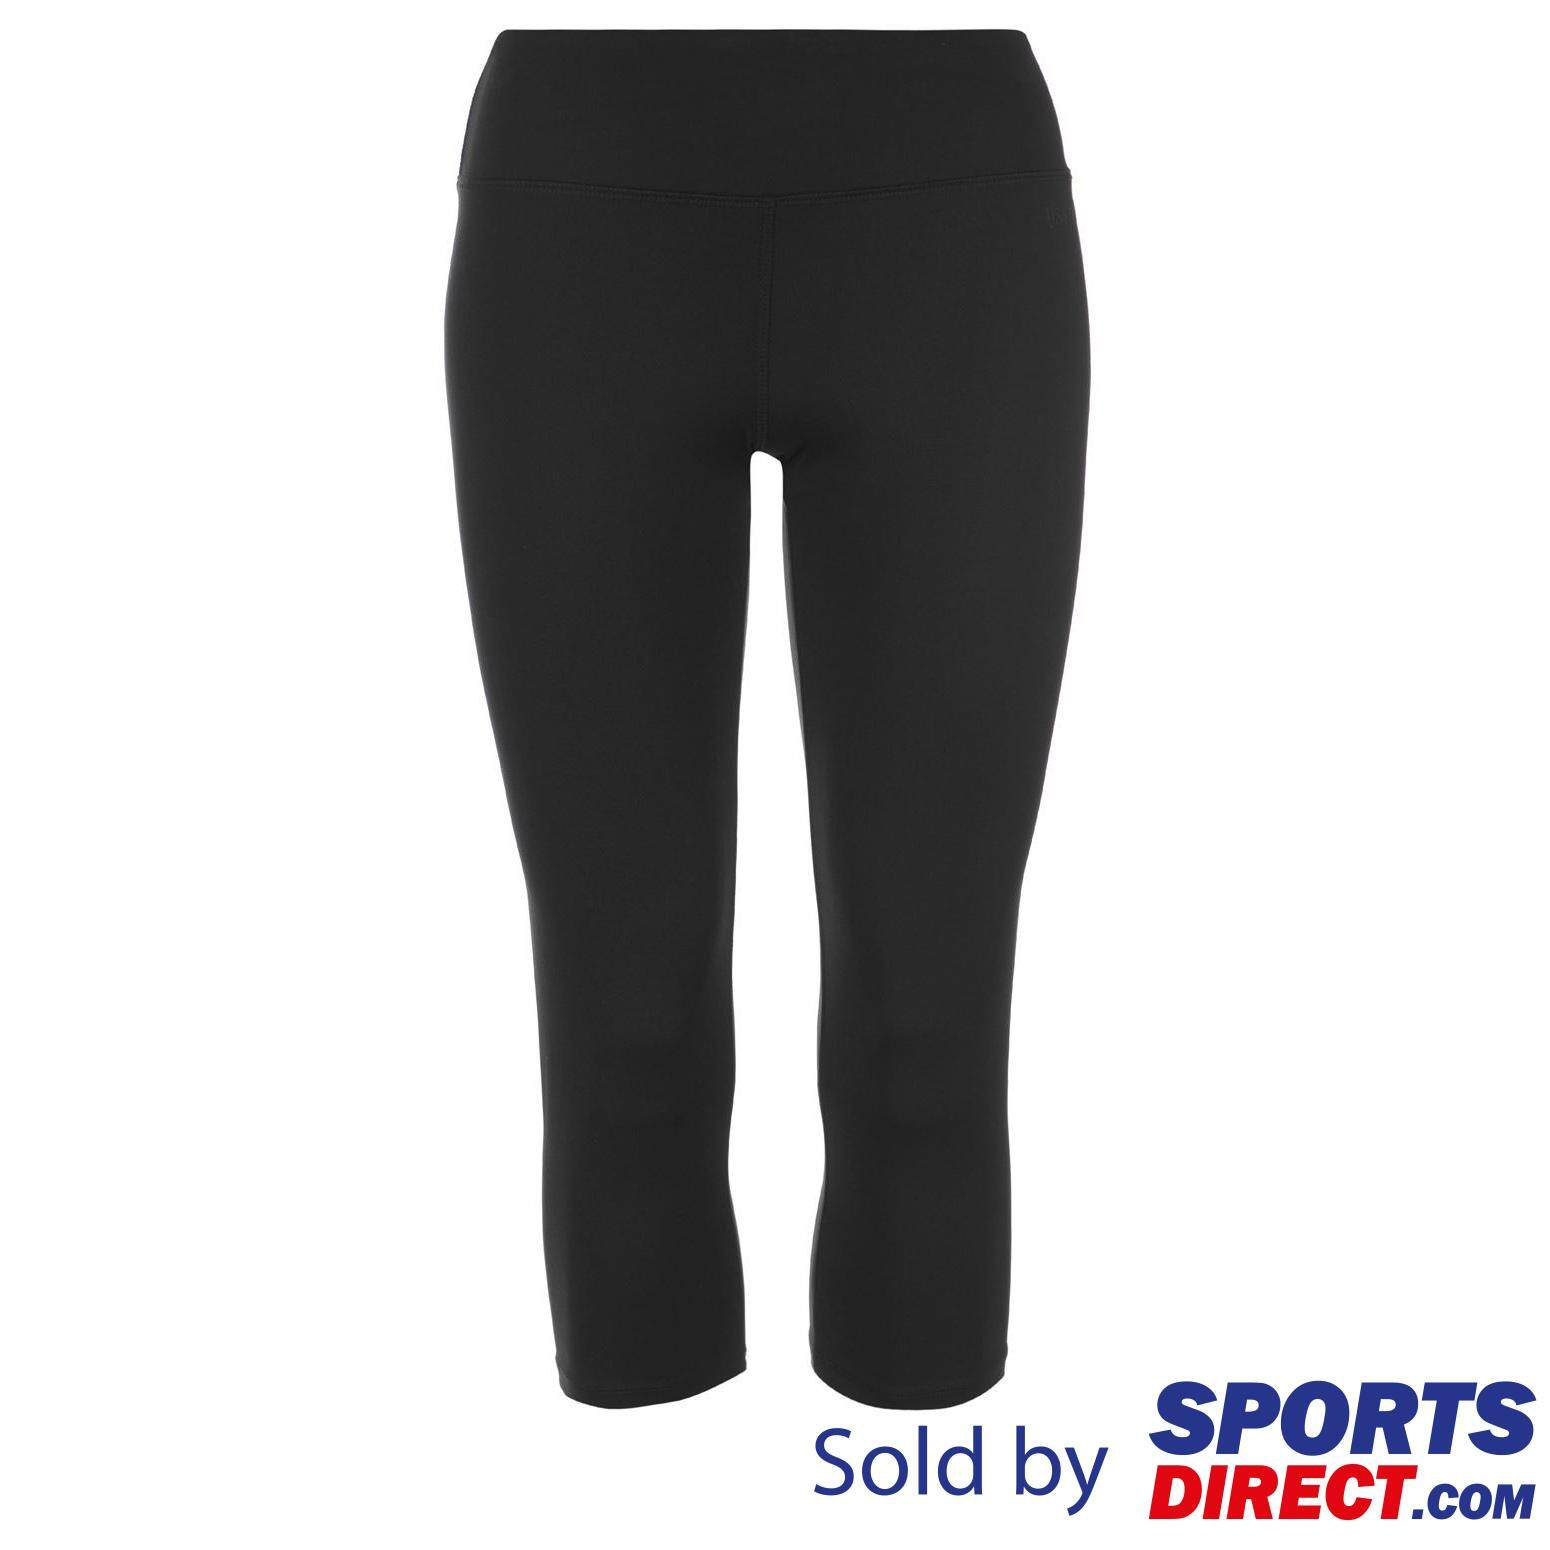 Usa Pro Womens Capri Leggings (black) By Sports Direct Mst Sdn Bhd.